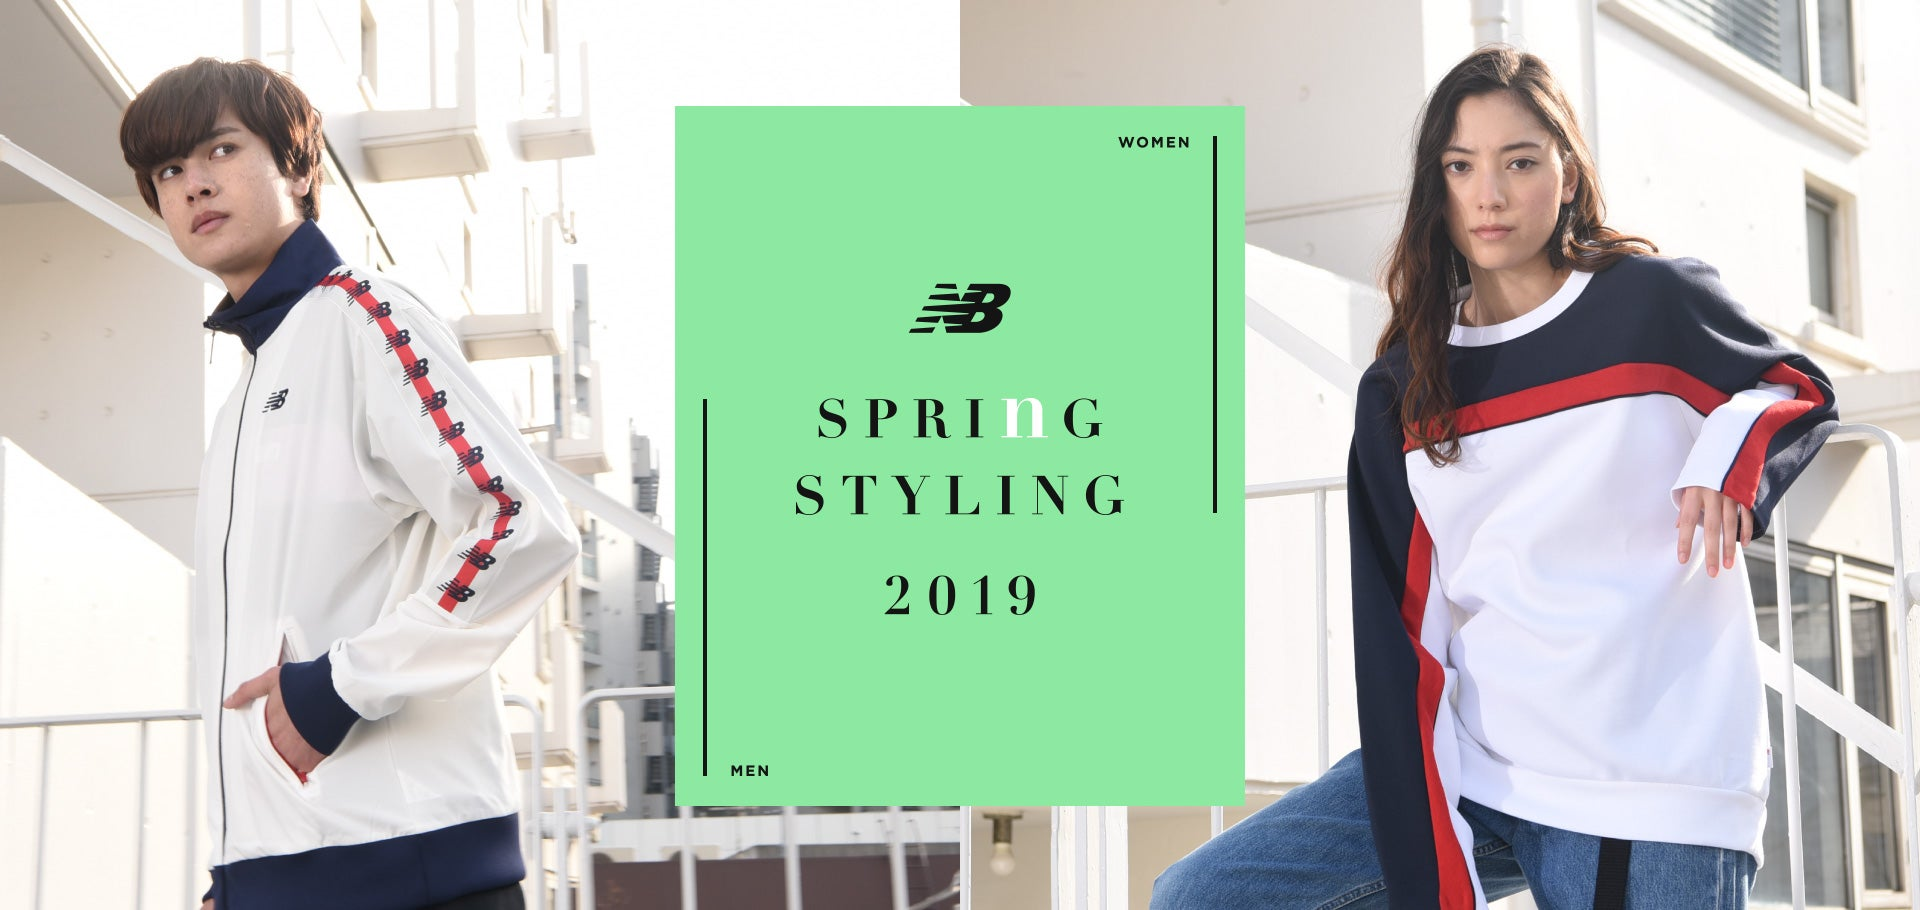 NB Spring Styling 2019